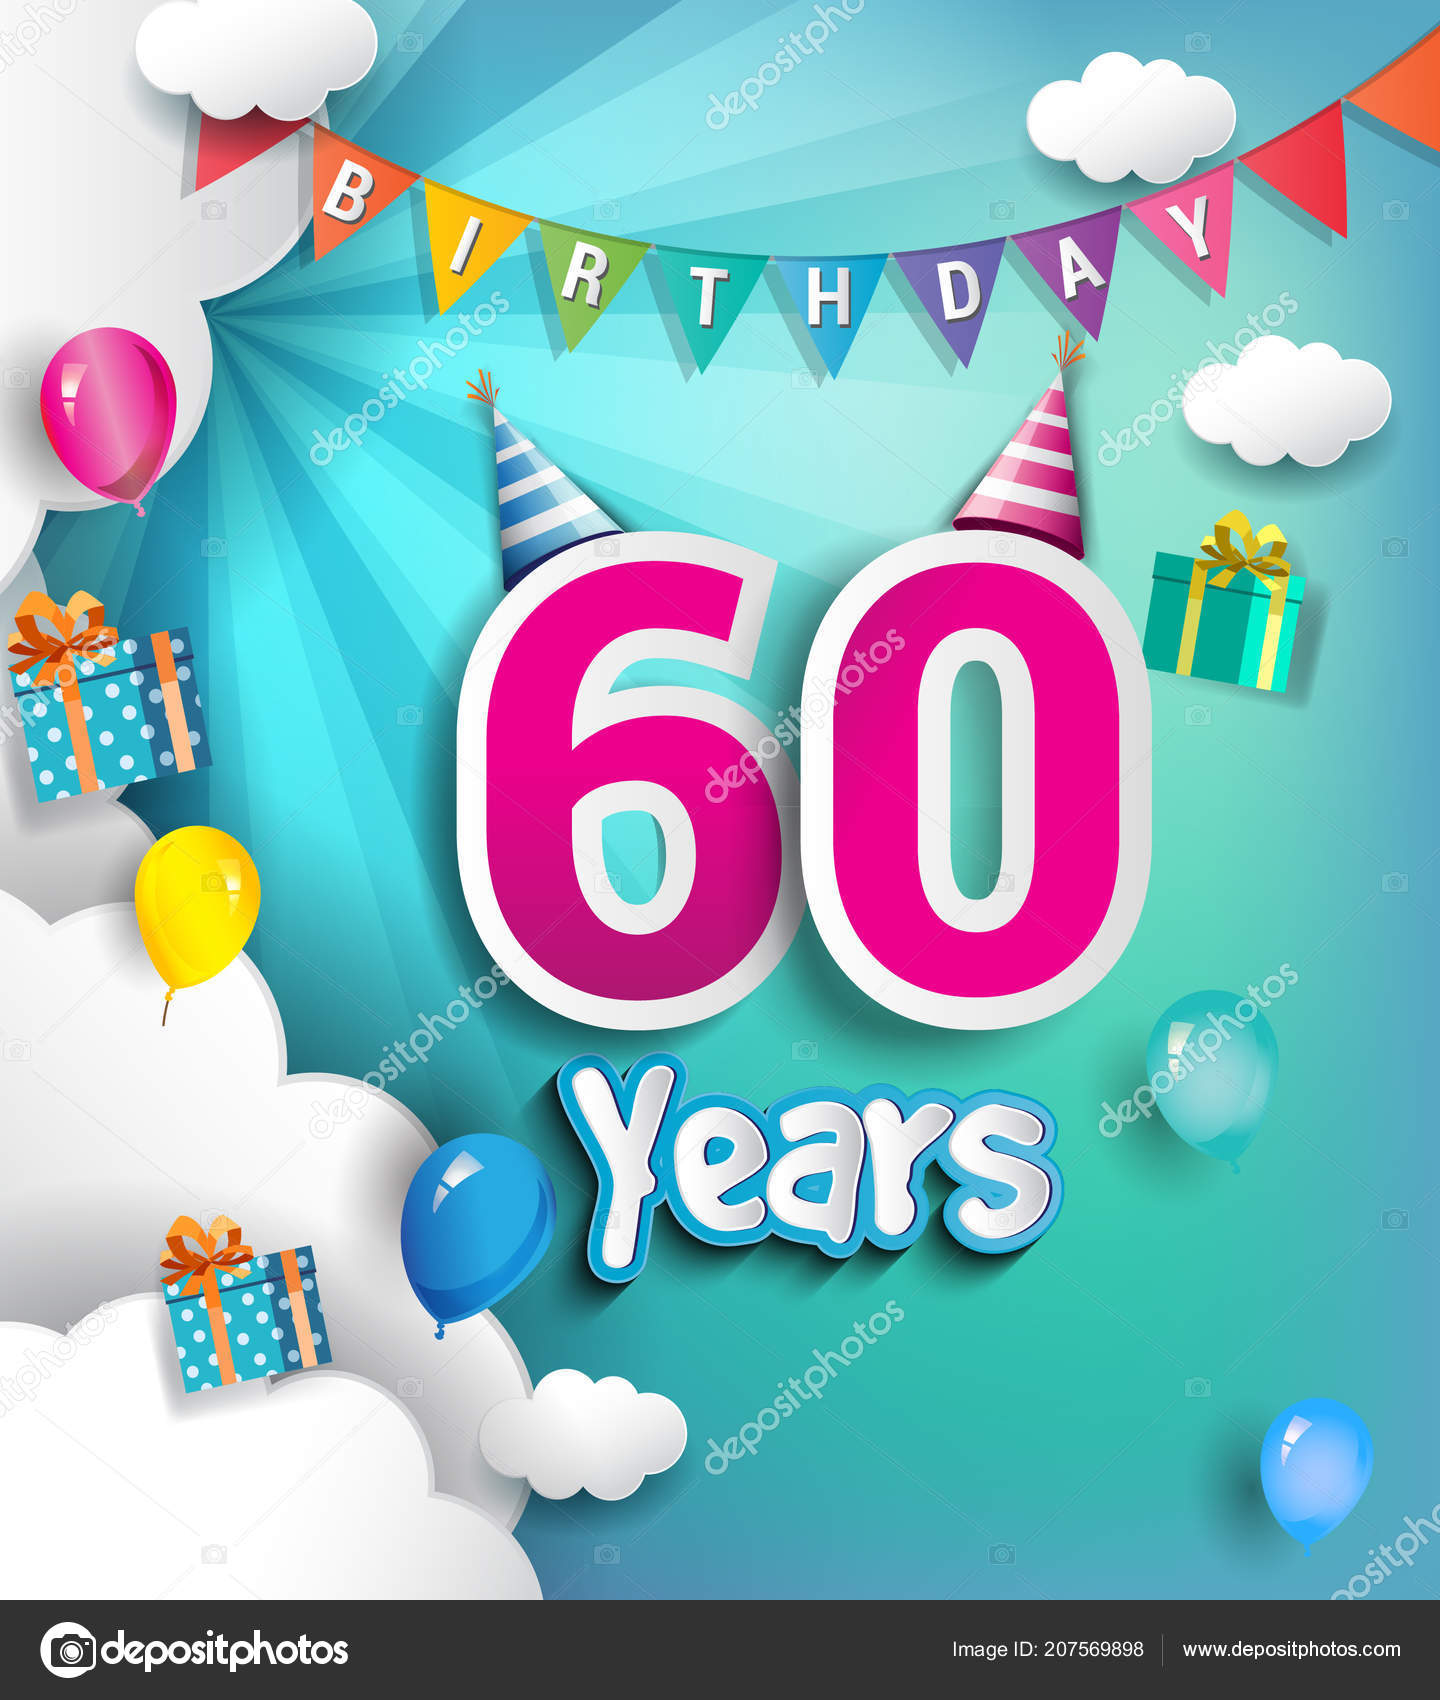 60 Years Birthday Design For Greeting Cards And Poster With Cloud Balloons Using Paper Art Style Vector Elements Anniversary Celebration